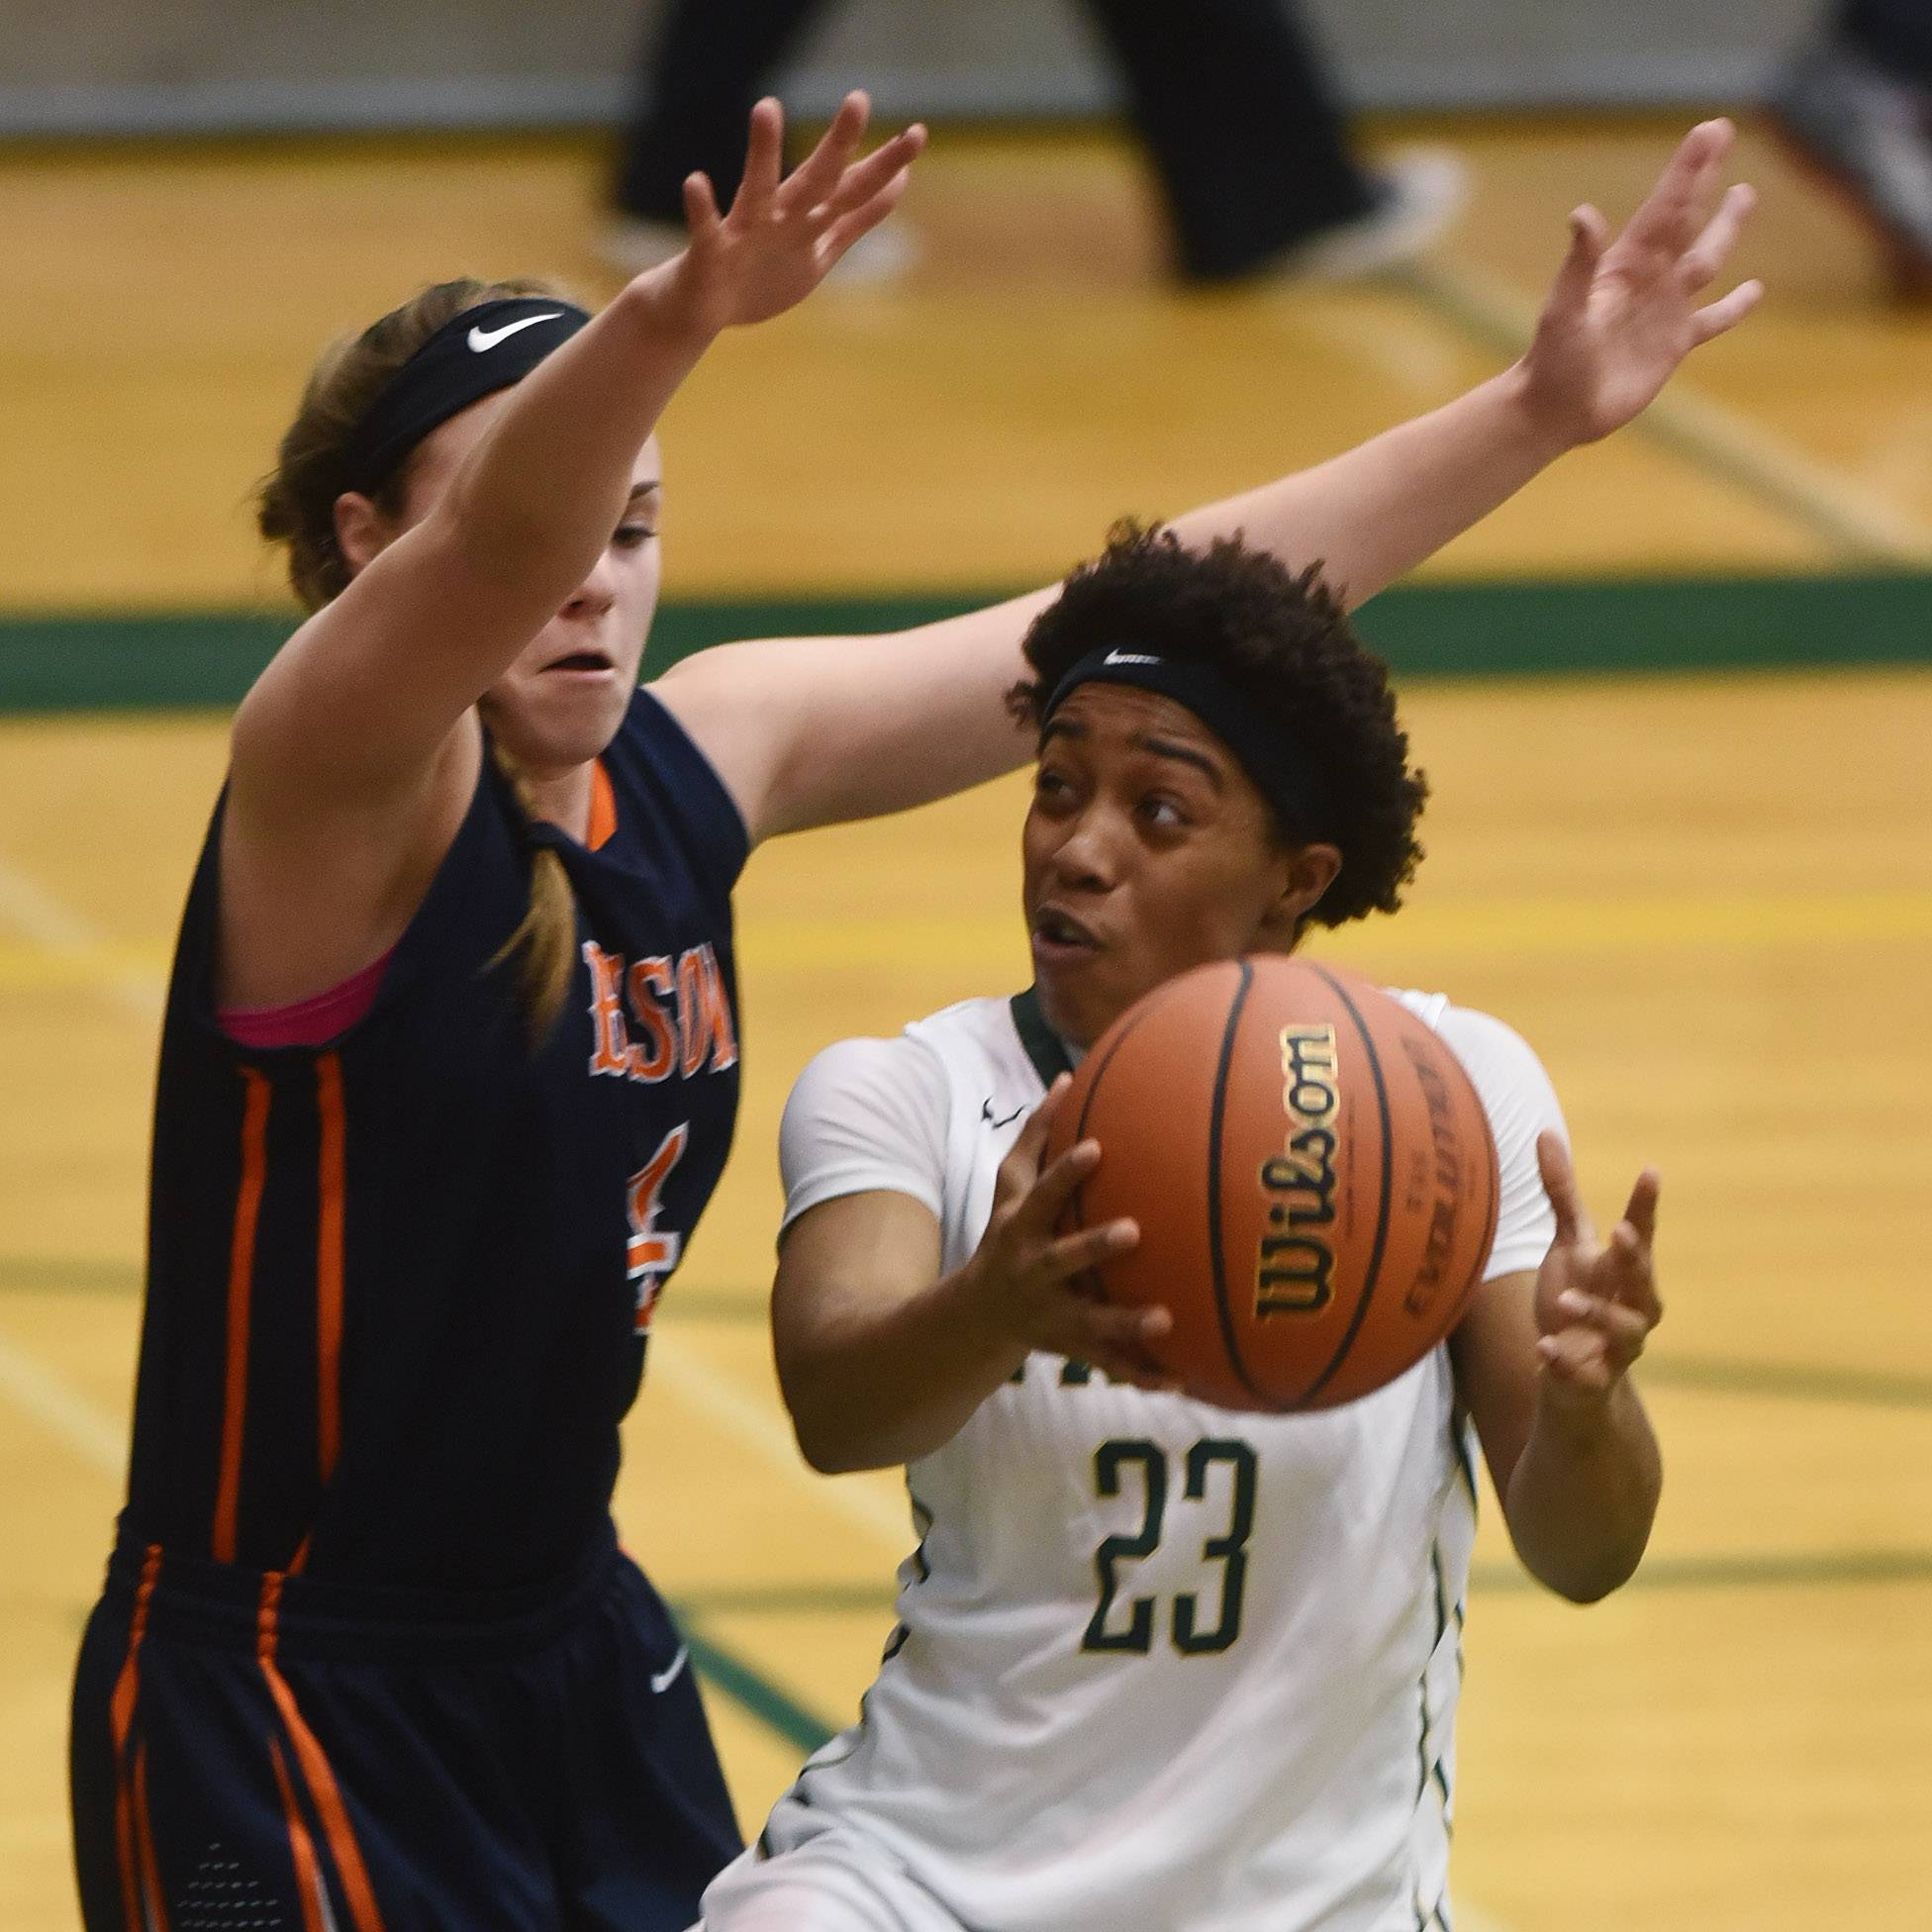 Fremd's Brianna Lewis drives for a layup against Buffalo Grove's Georgette Topalis during the Mid-Suburban League championship game in Palatine Wednesday.